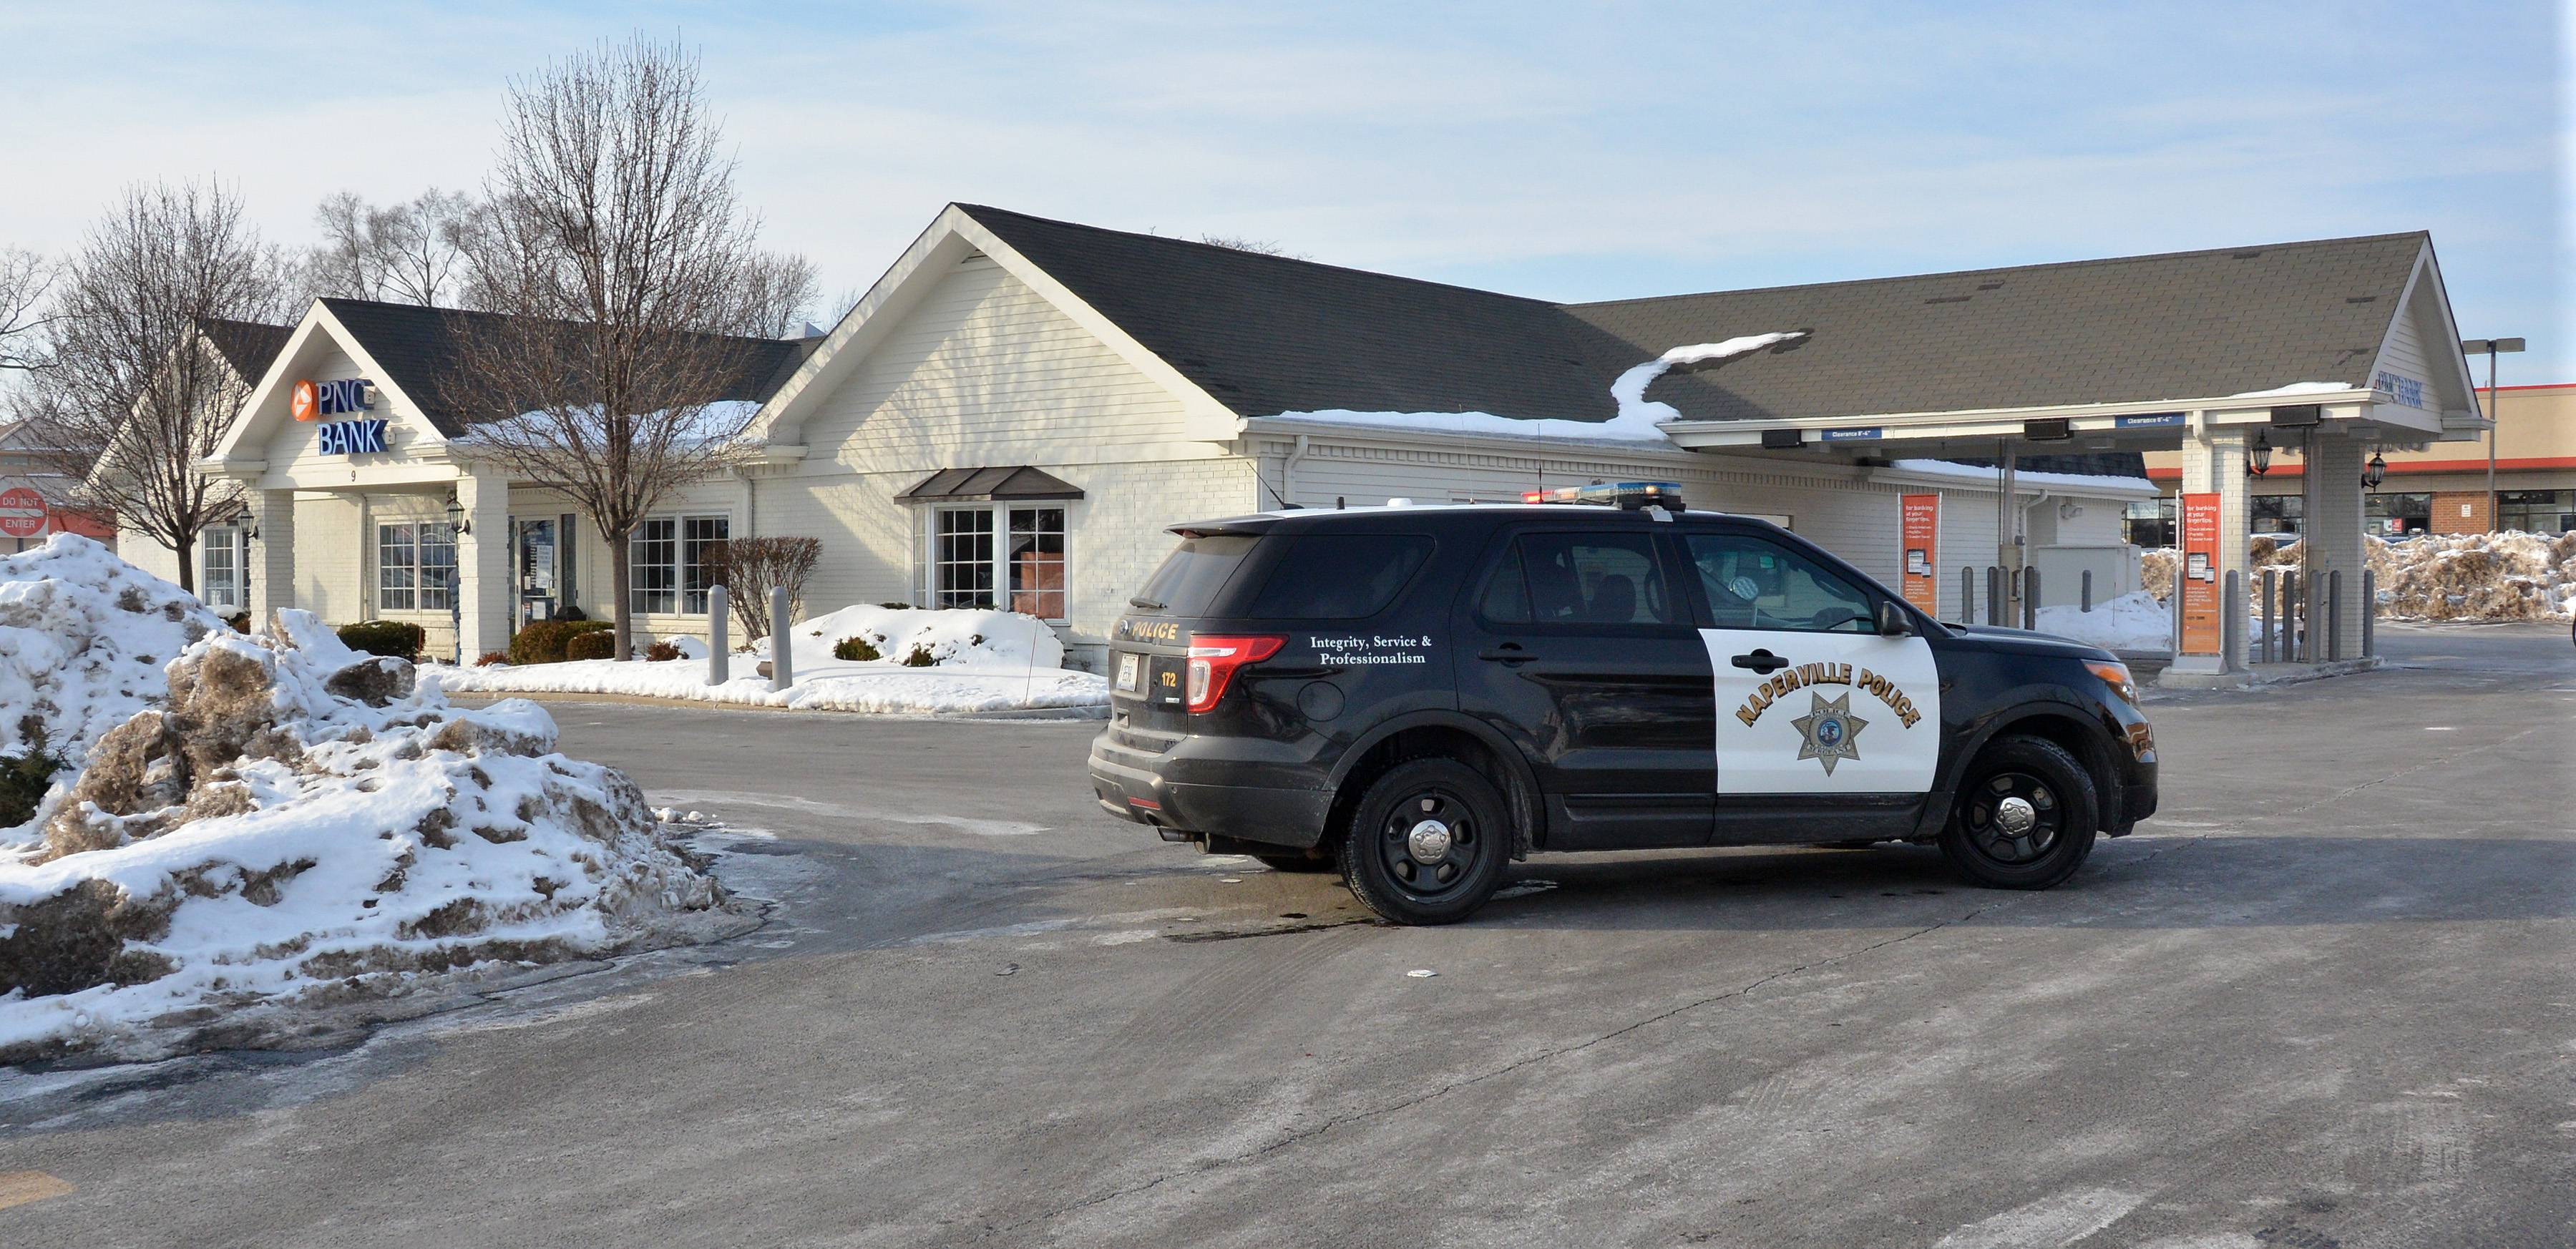 Naperville police investigate an armed robbery Friday at the PNC Bank at Washington Street and Ogden Avenue.